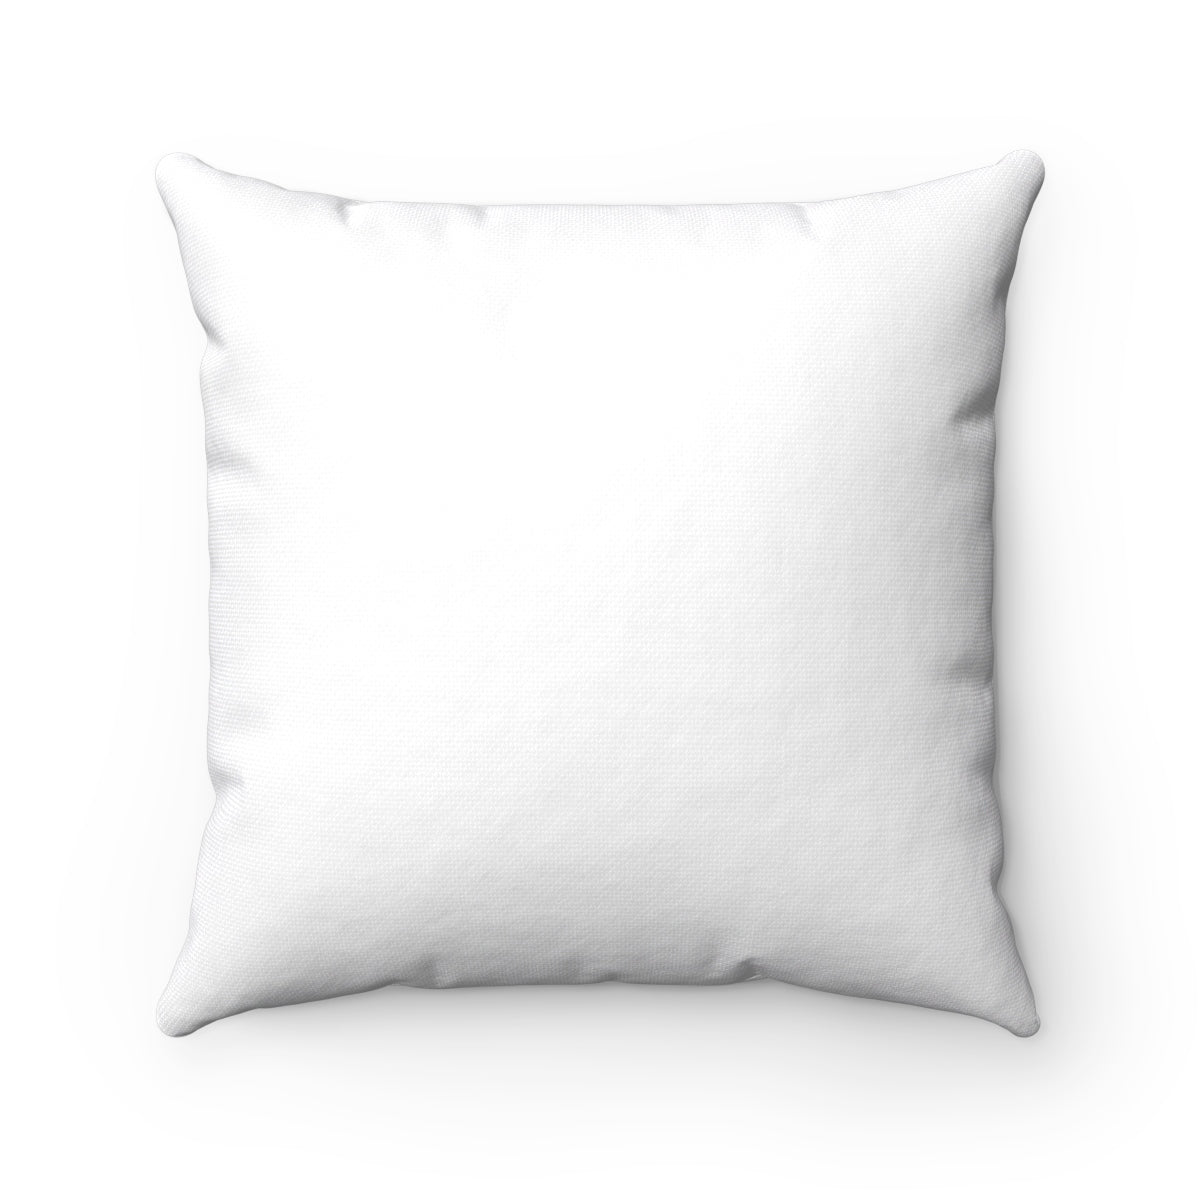 Dont Explain Your Life Express It Spun Polyester Square Pillow